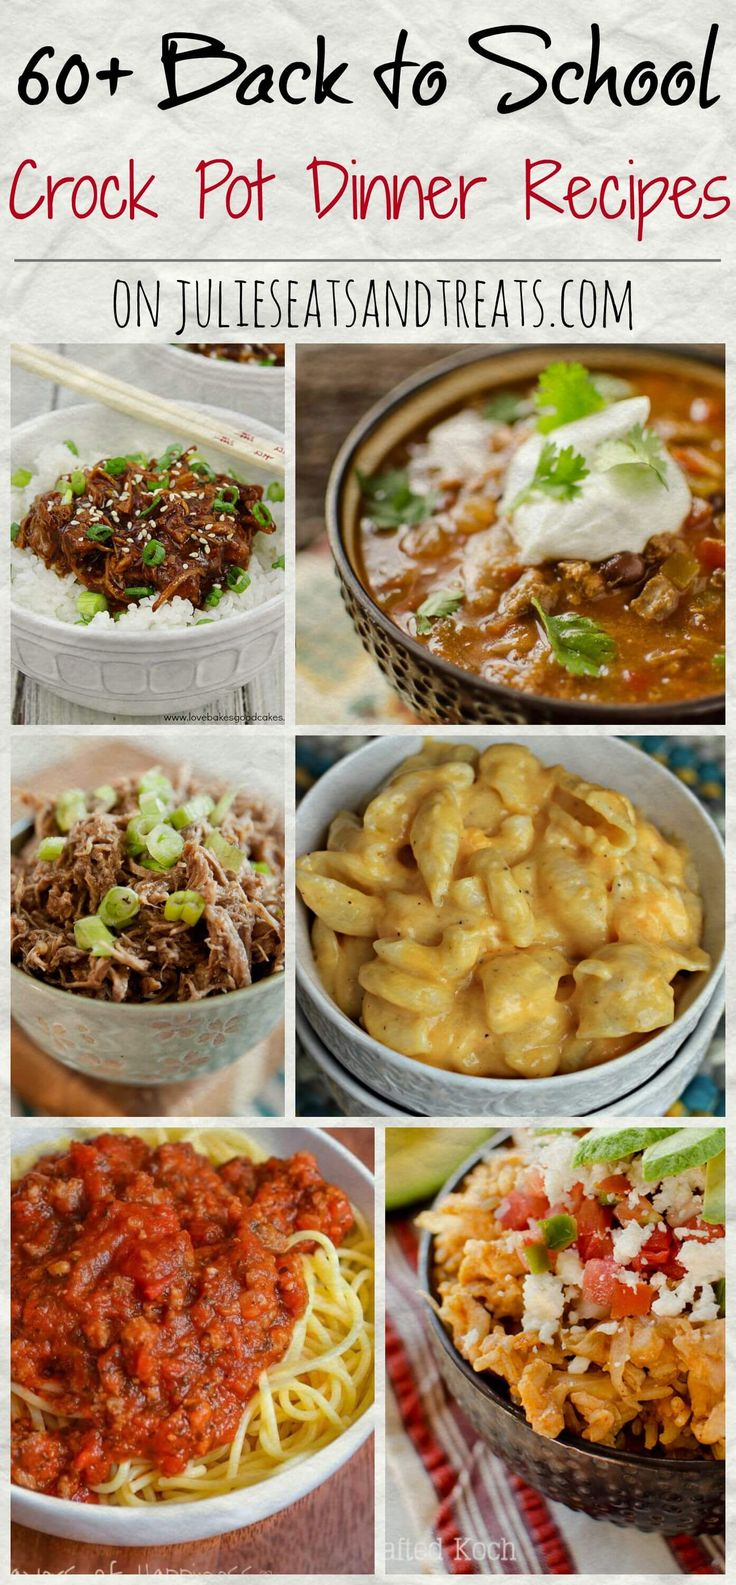 60+ Crock Pot Dinner Recipes - (julieseatsandtreats)